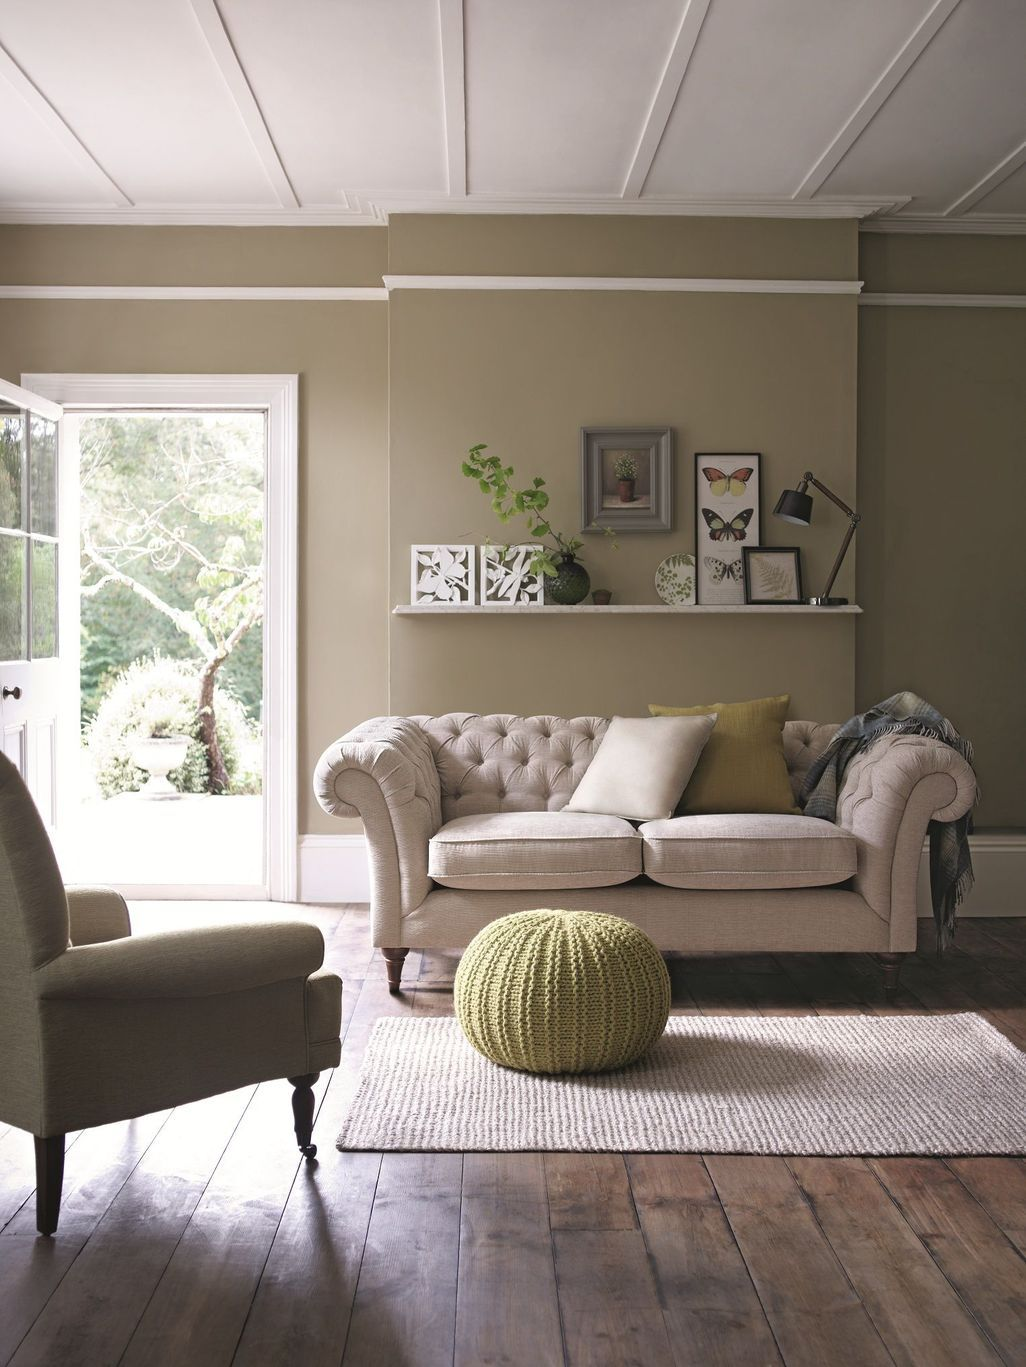 45 Cozy Green Livingroom Ideas (With images) | Living room ...